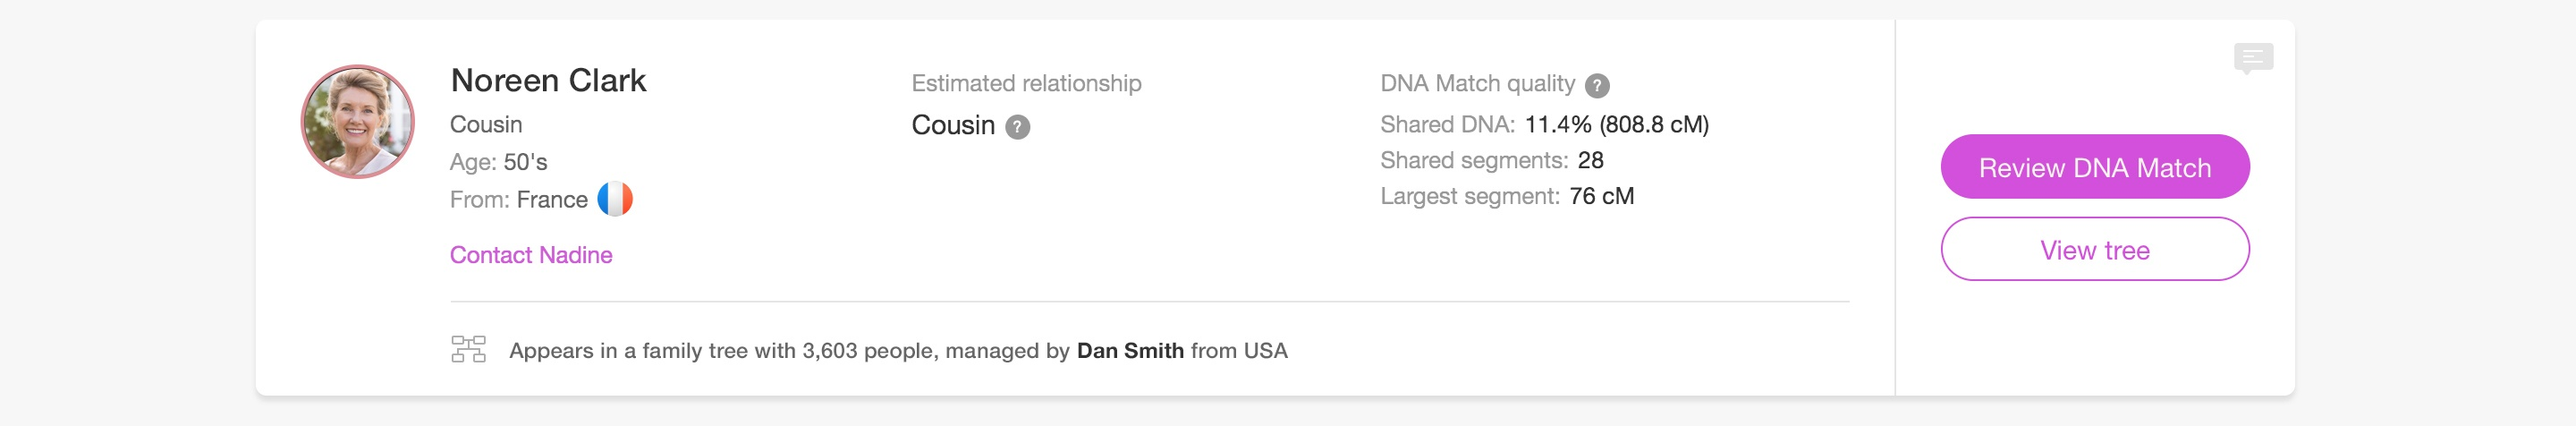 For every DNA Match, you'll learn the estimated relationship and % shared DNA